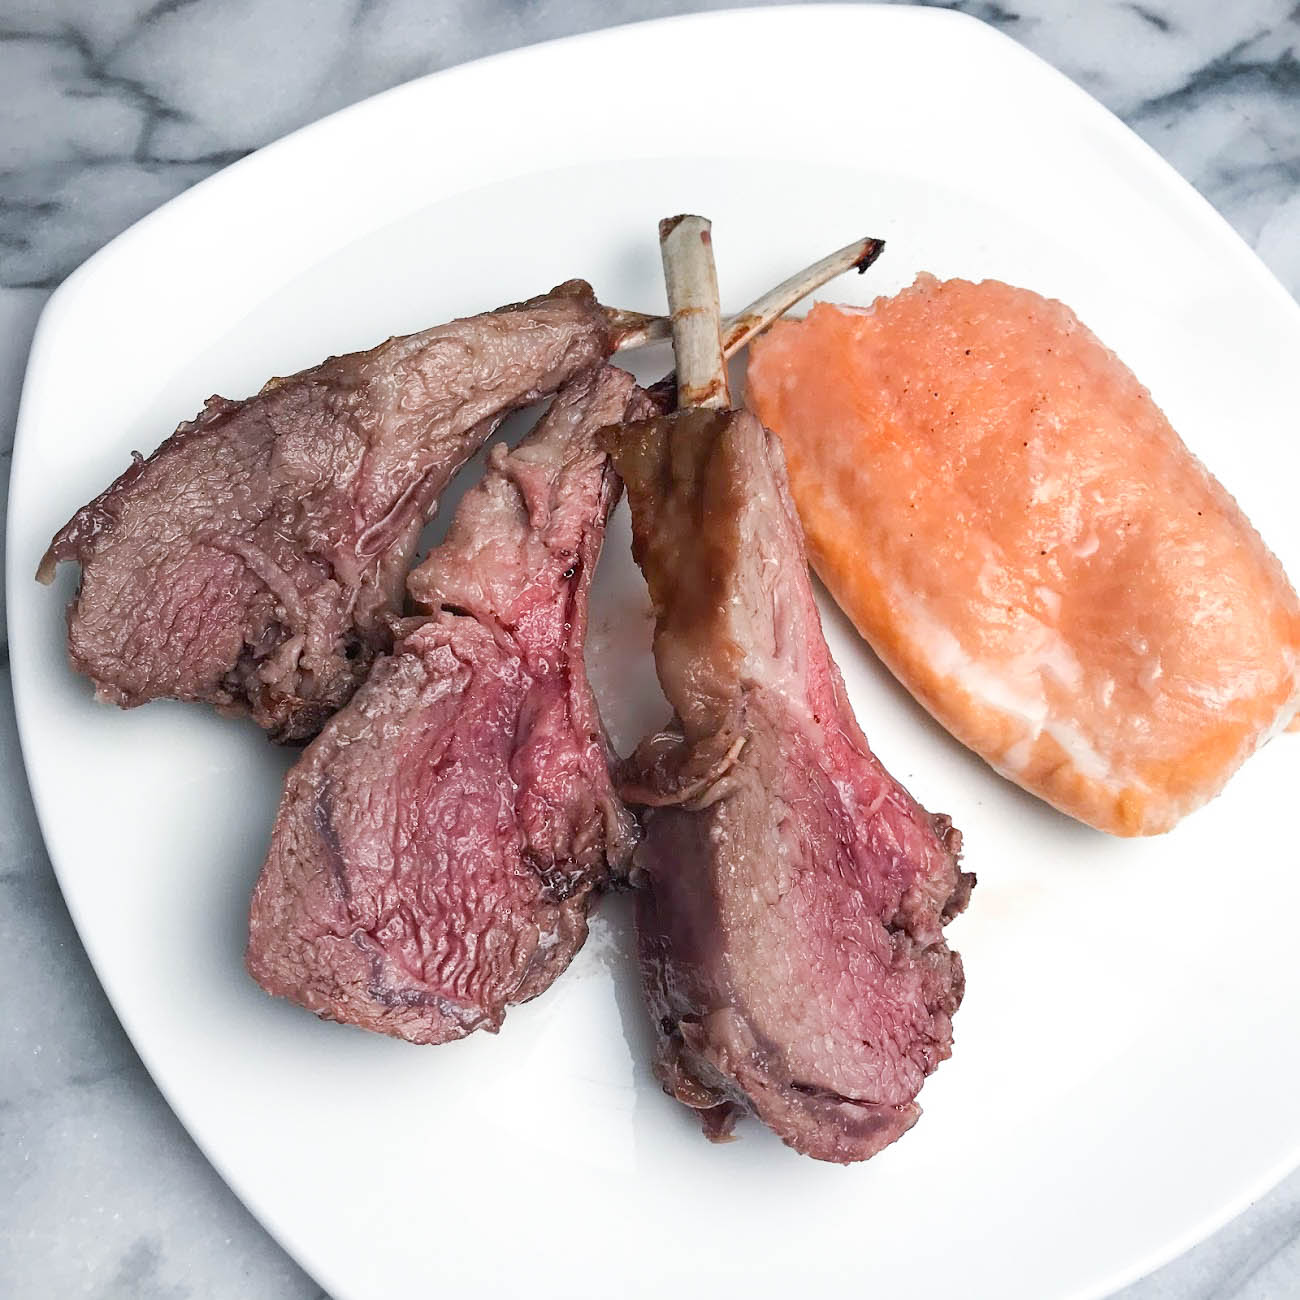 My Experience on the Carnivore Diet